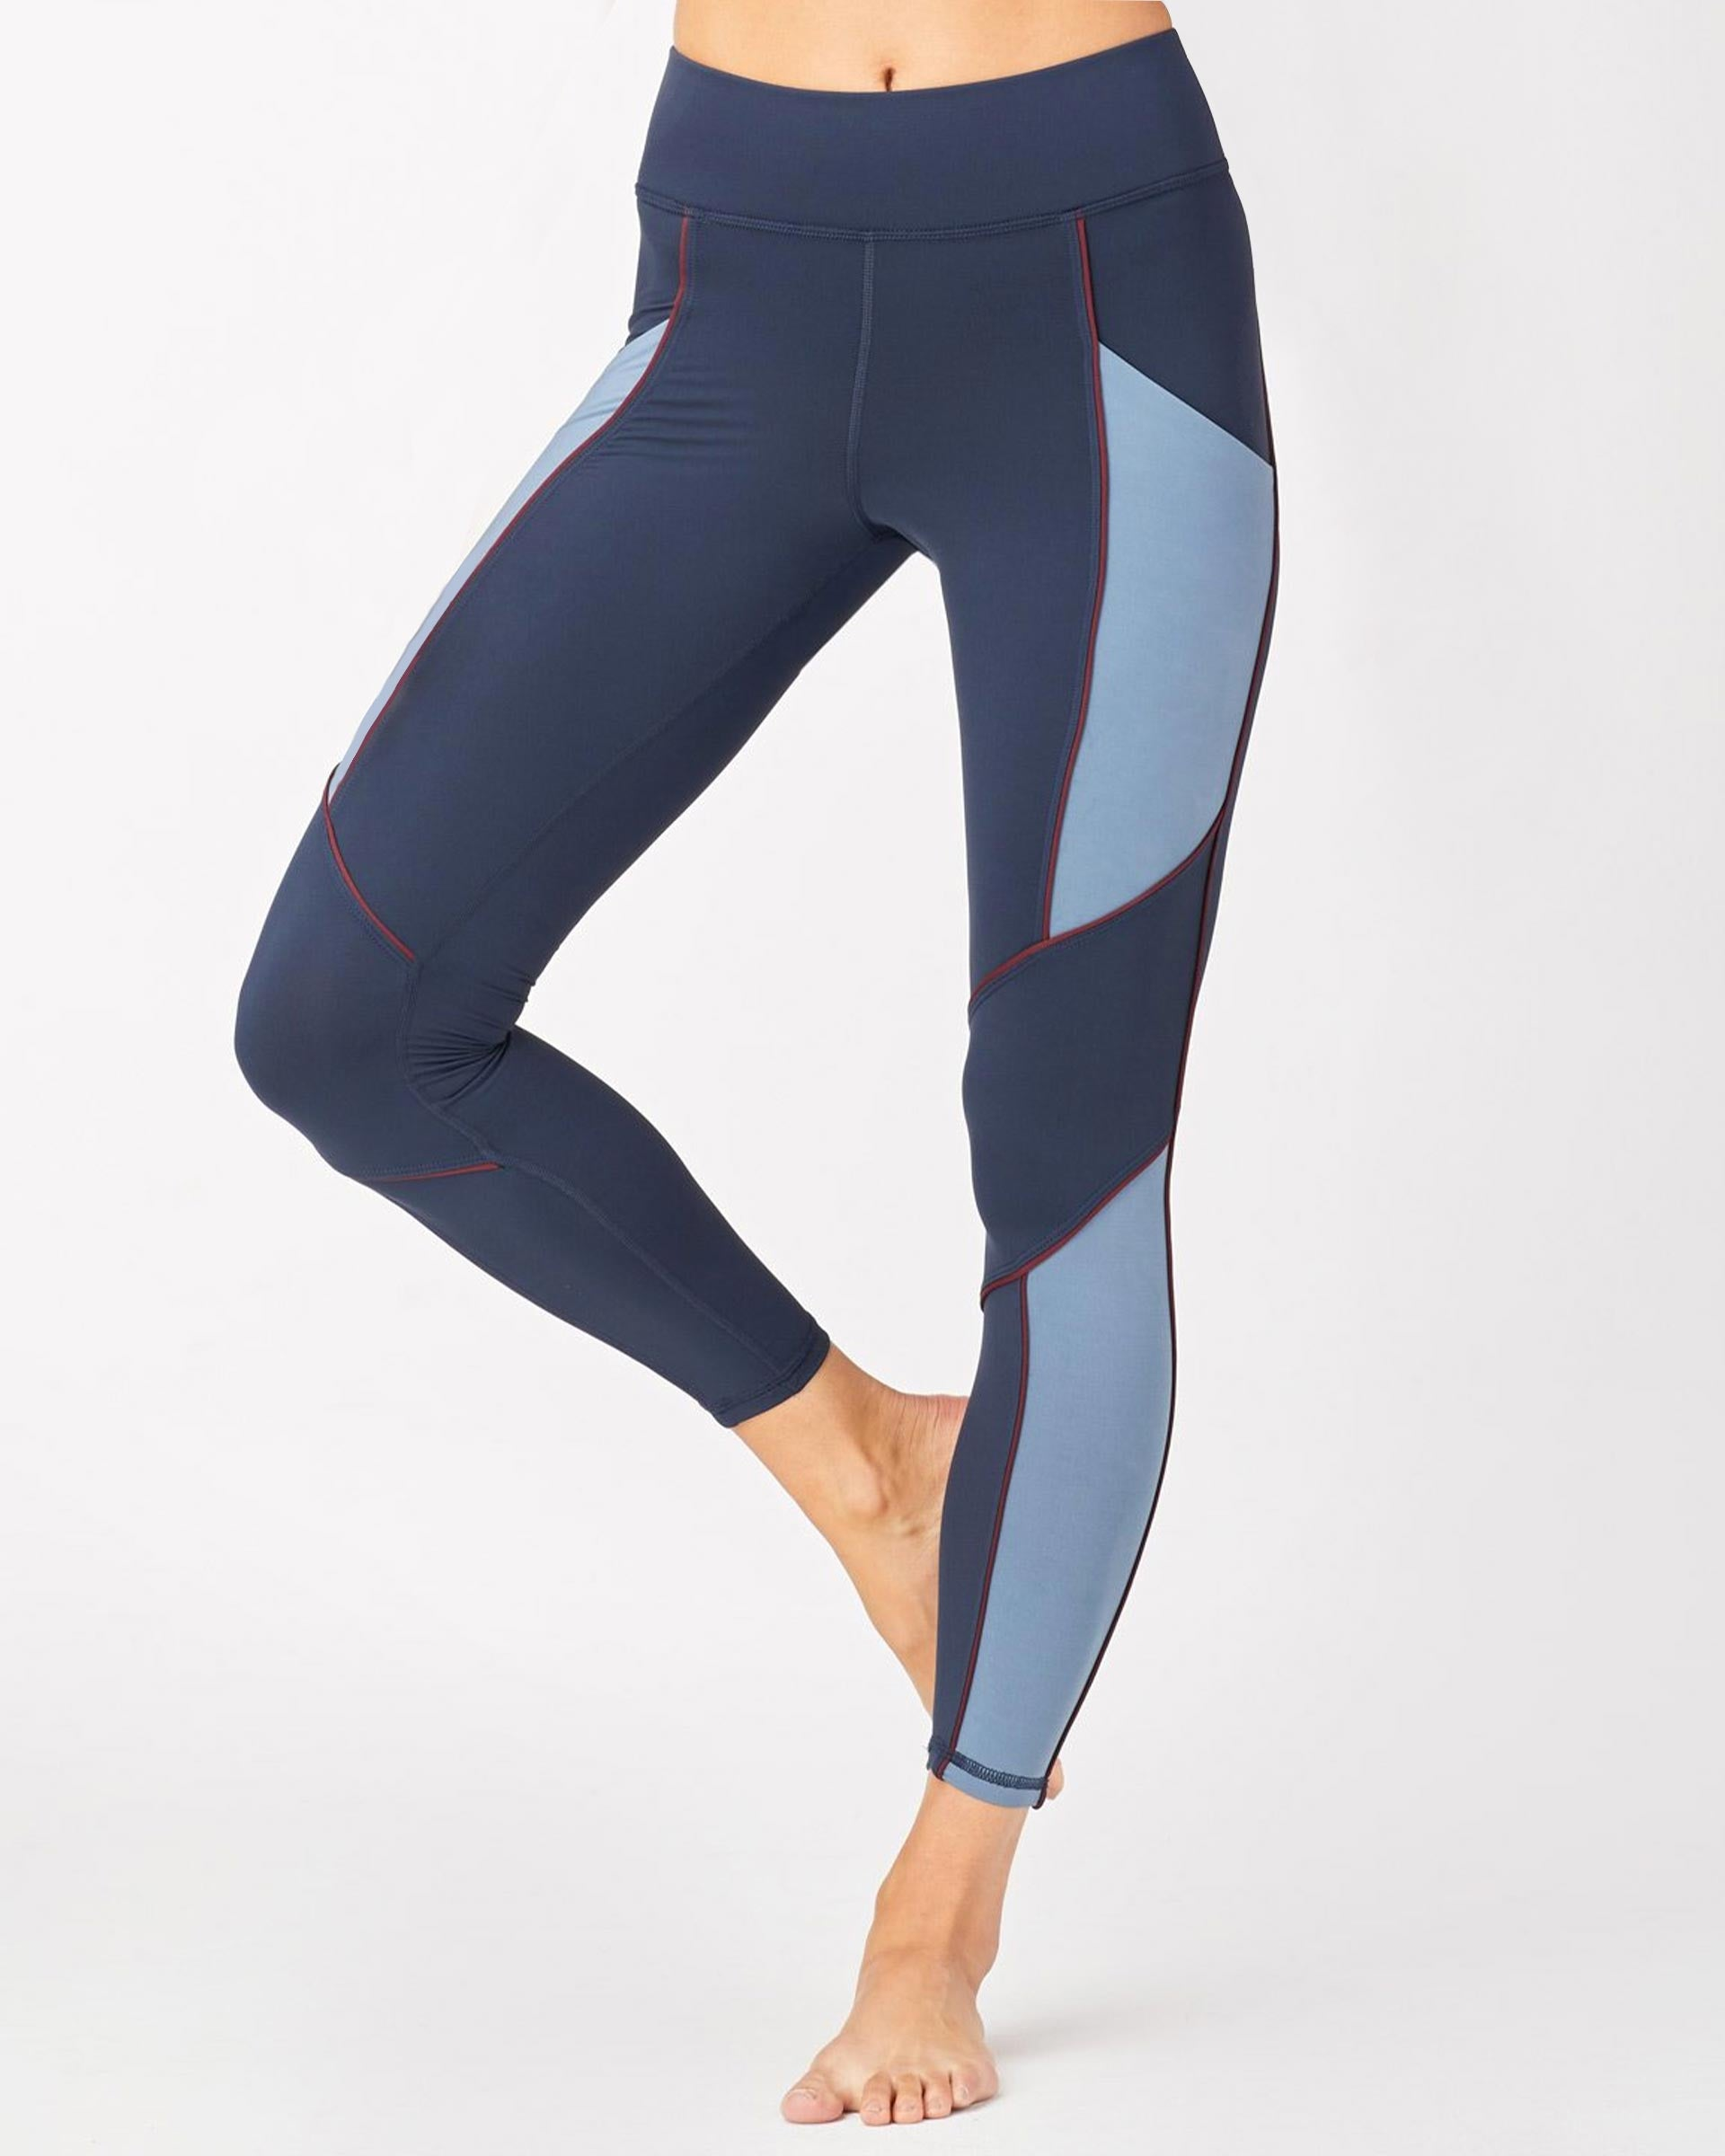 baltic-pocket-legging-deep-sea-navy-storm-blue